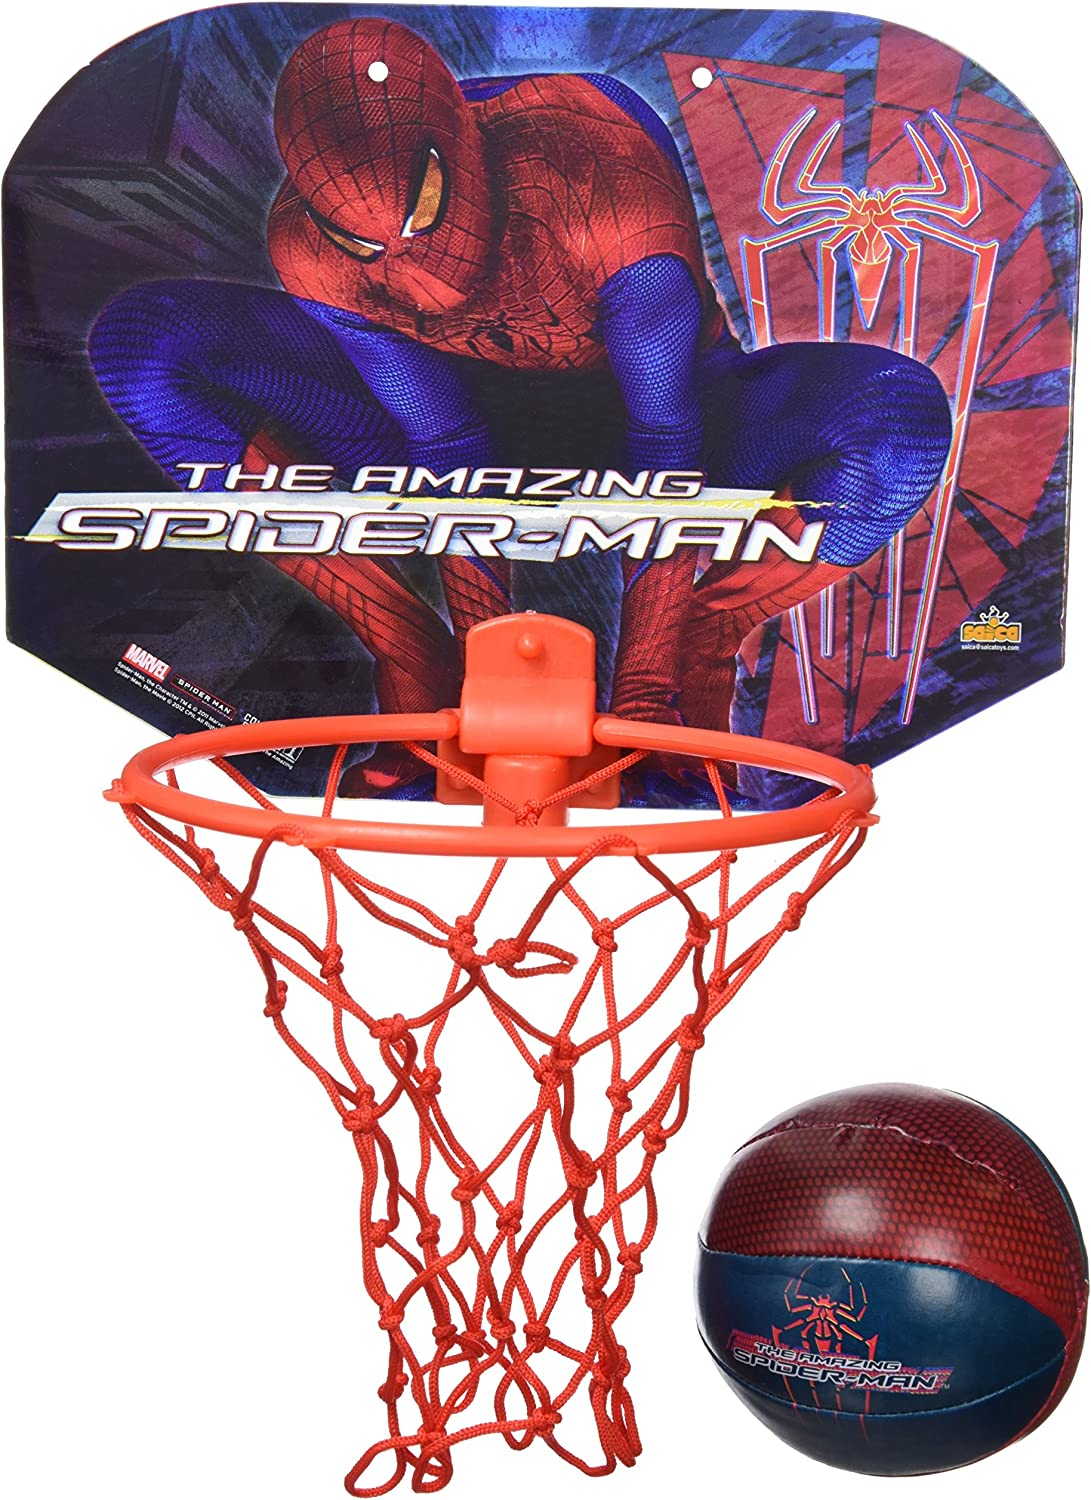 Spiderman - Mini Basket (Saica Toys 8859): Amazon.es: Juguetes y ...